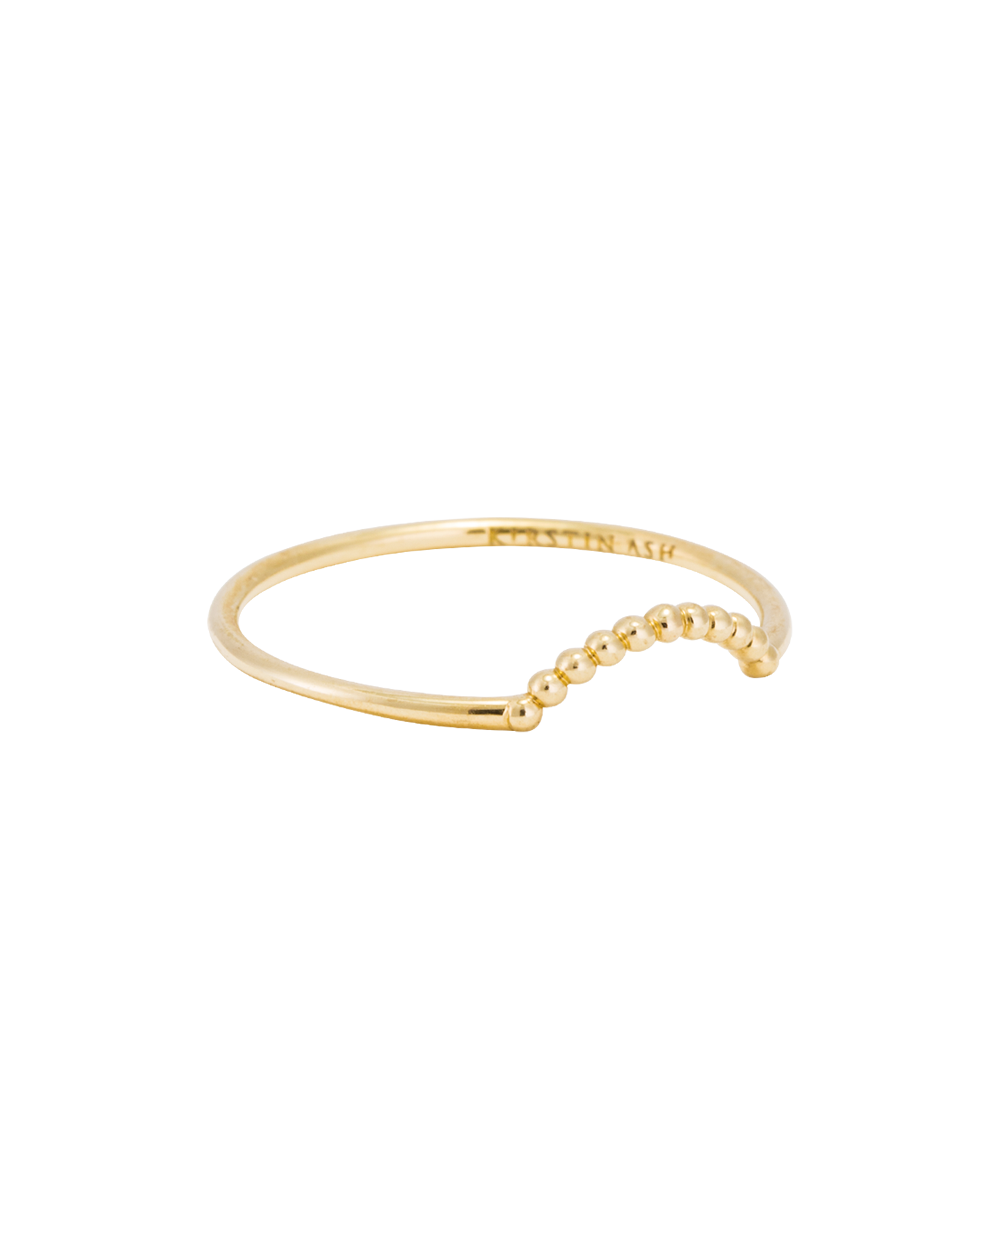 ARC RING (14K GOLD) Image 01